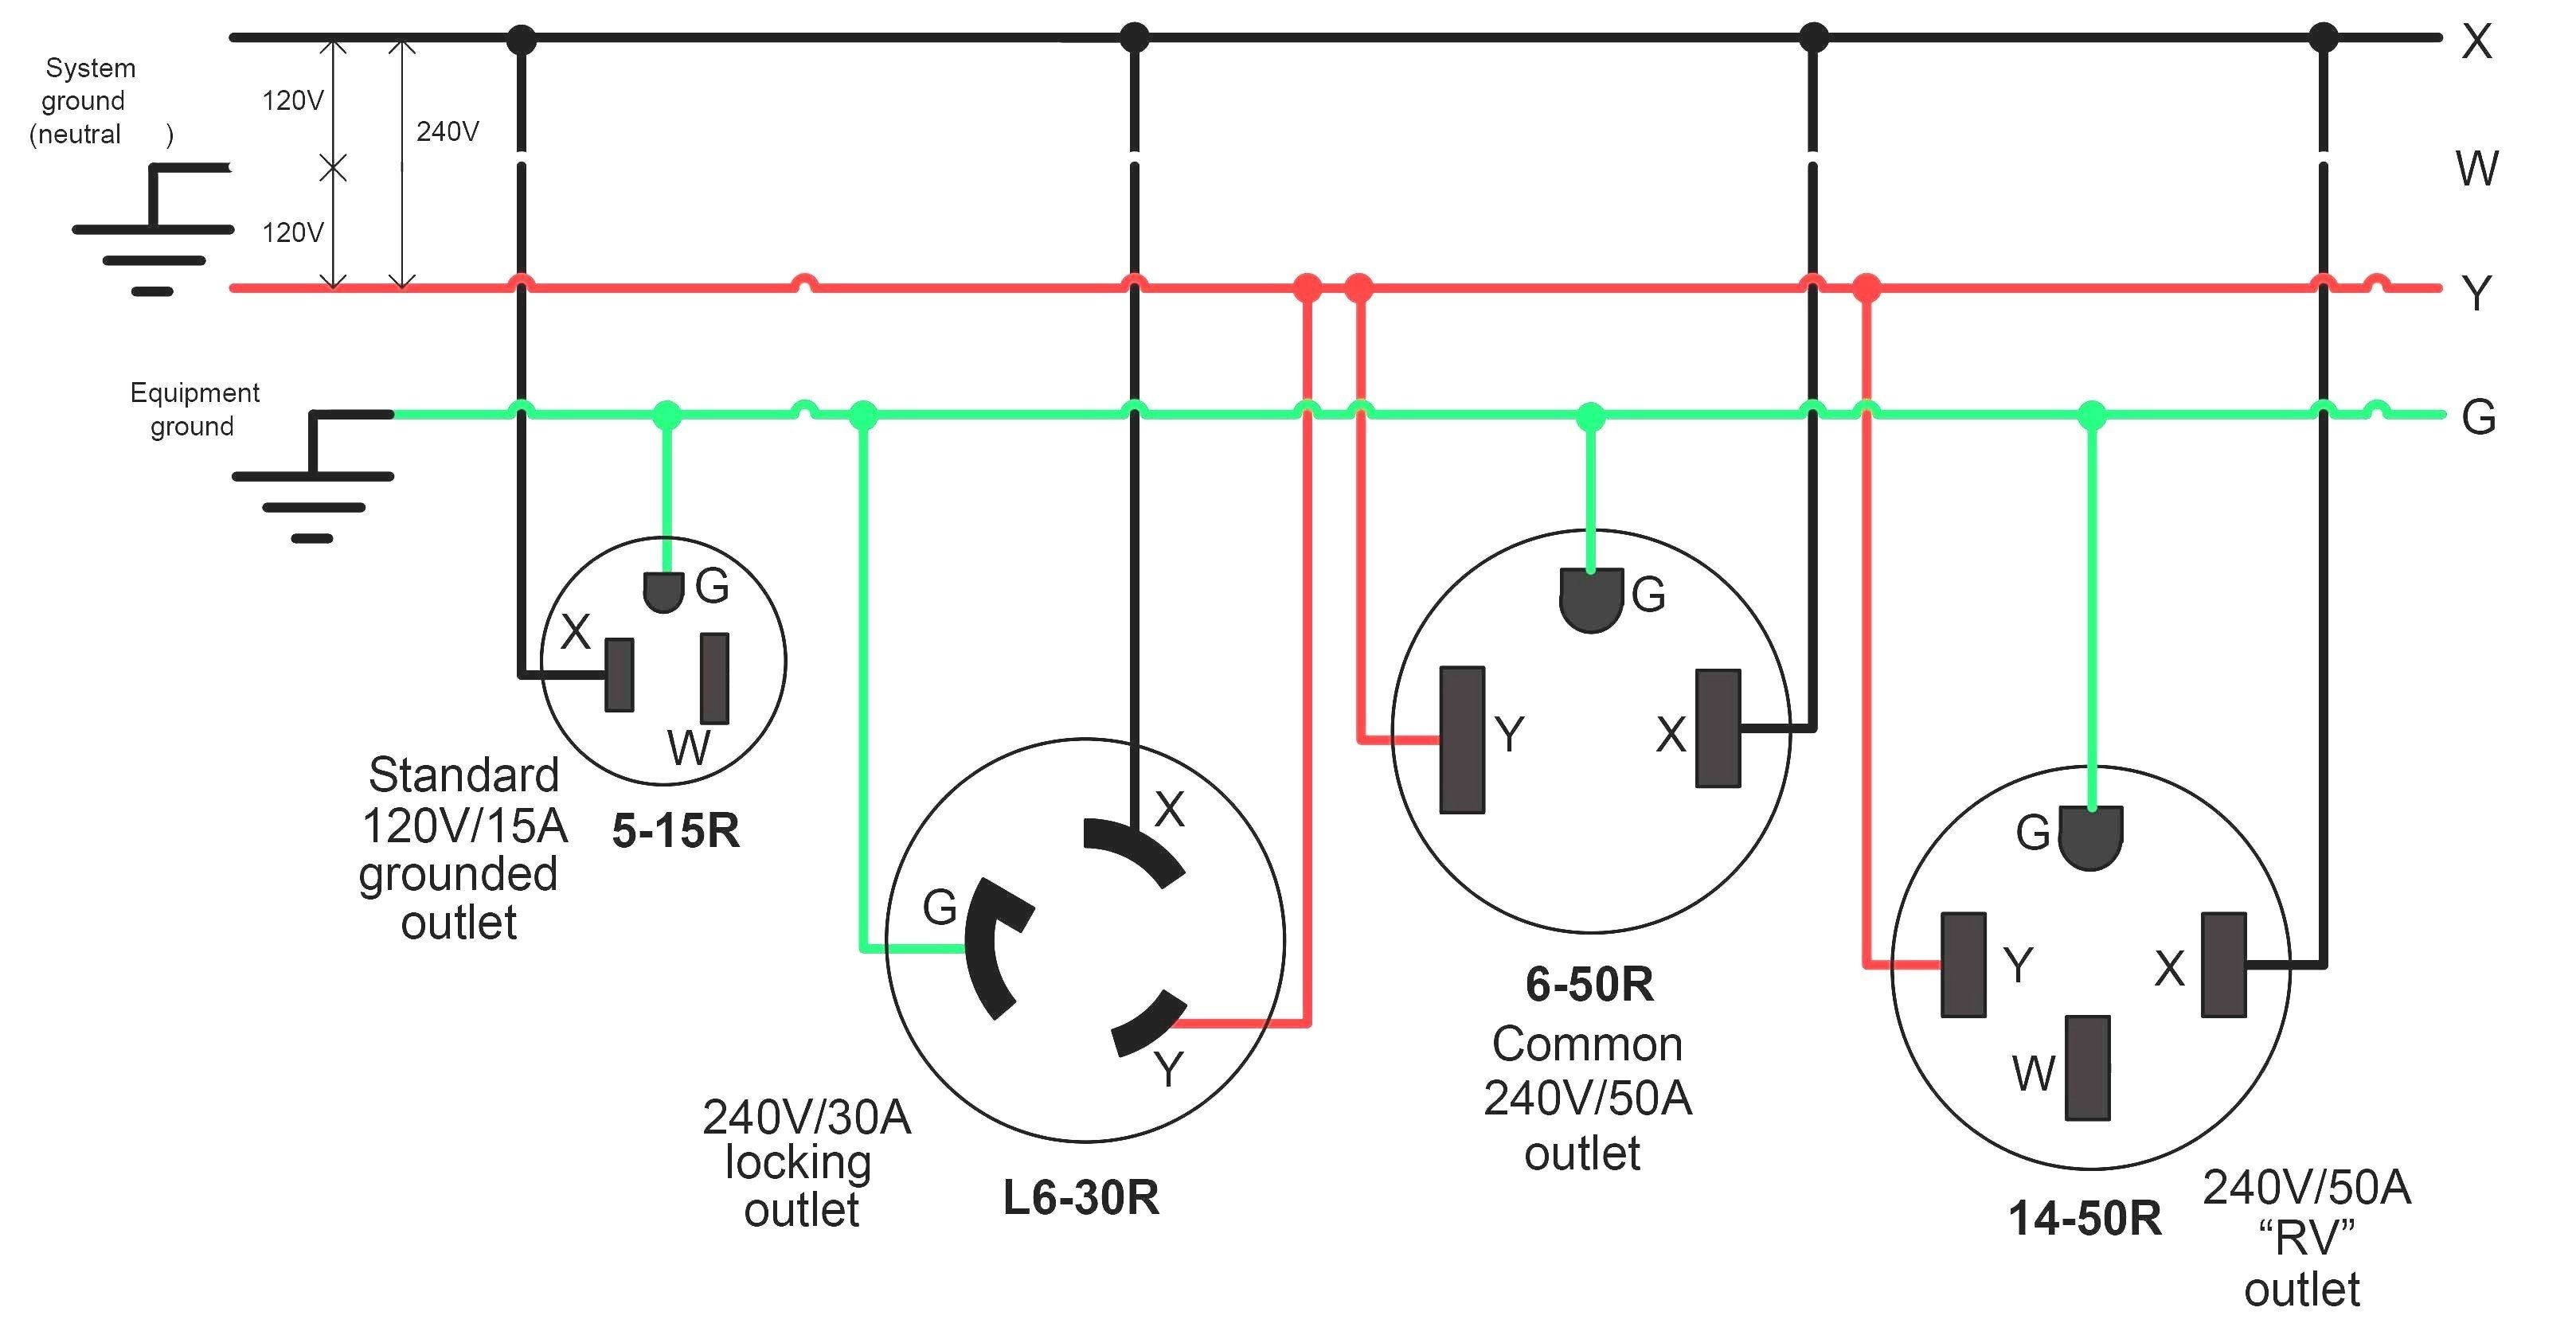 wiring 120v double plug wiring diagram data val wiring 120v double plug [ 3235 x 1672 Pixel ]